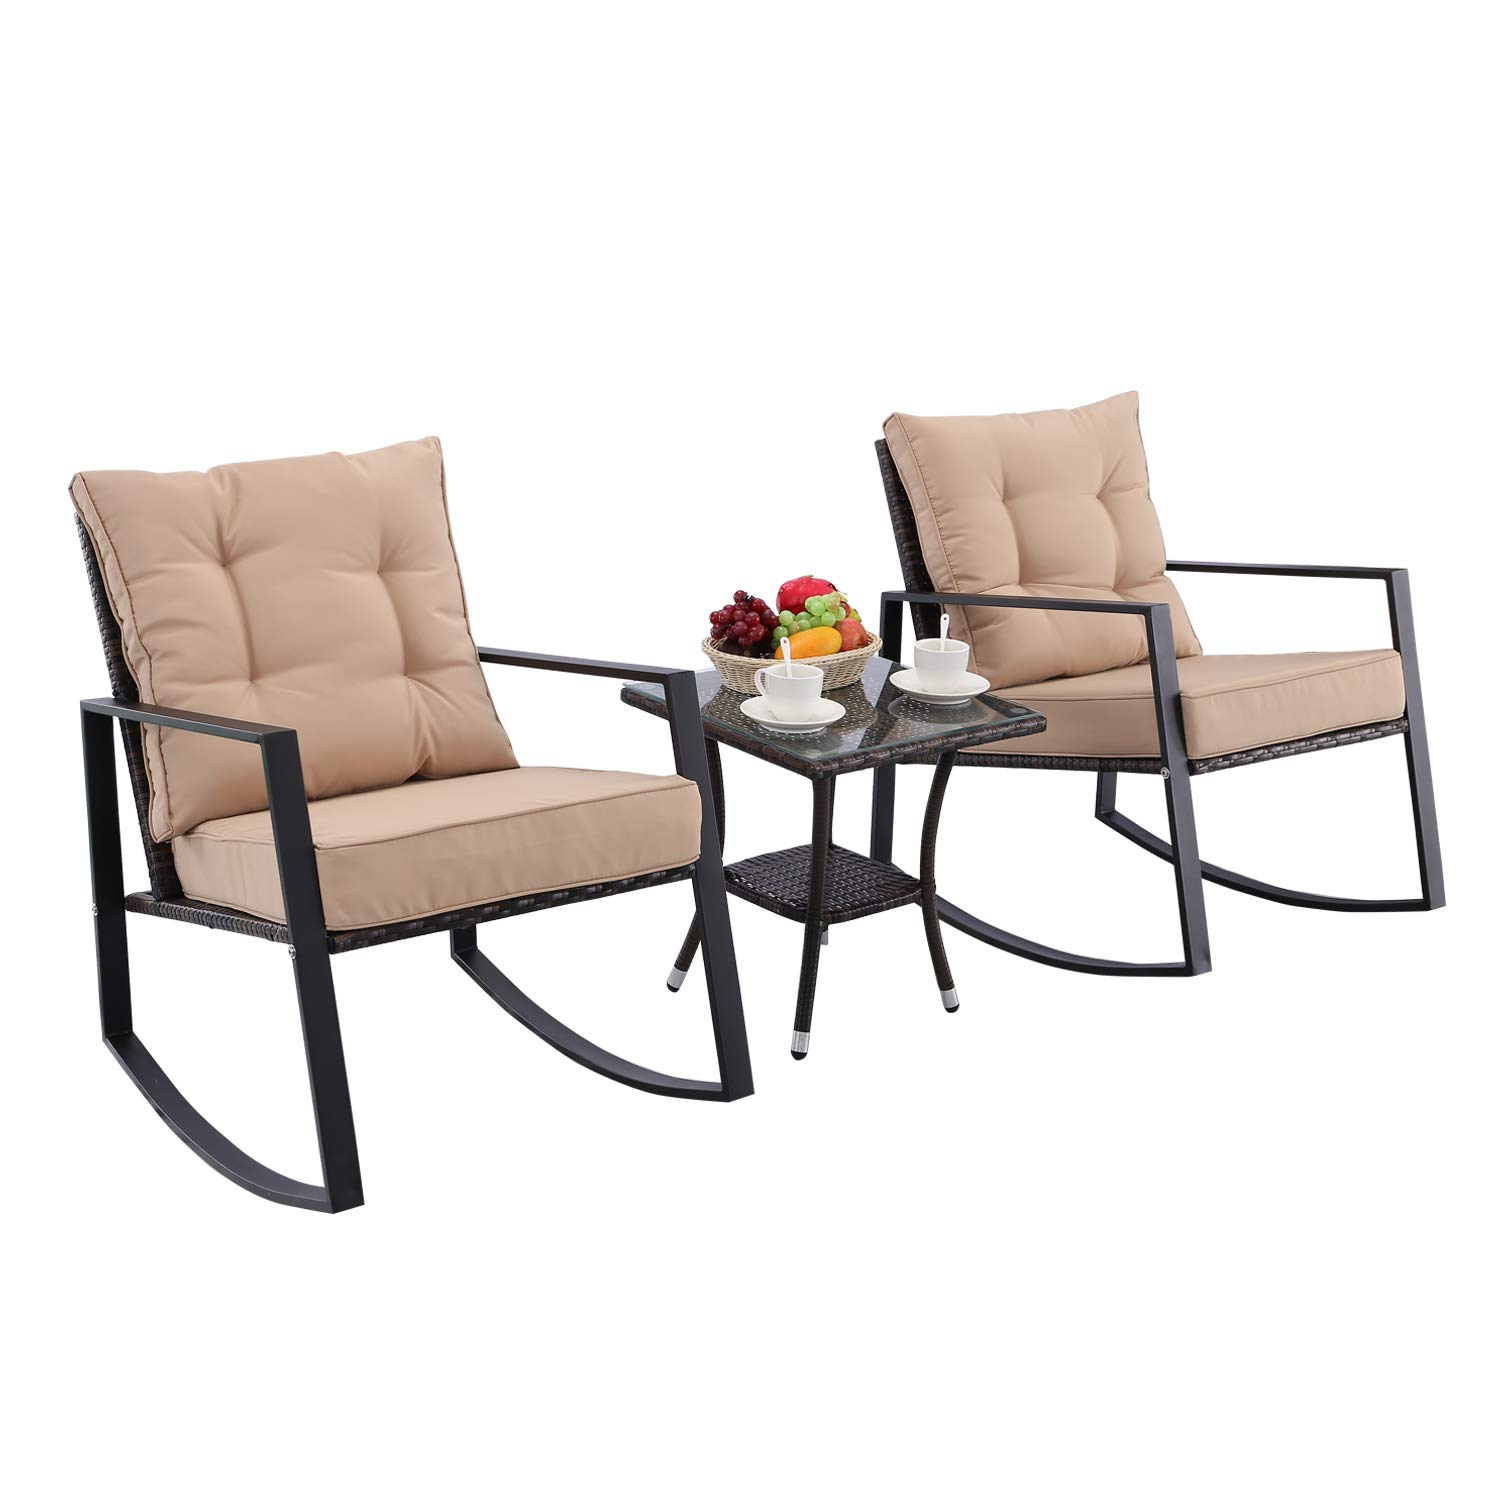 Do4U Outdoor Rocking Chair Set 3-Piece Patio Bistro Set Brown Cushioned PE Wicker Rattan Chairs with Coffee Table Porch Backyard Pool Garden